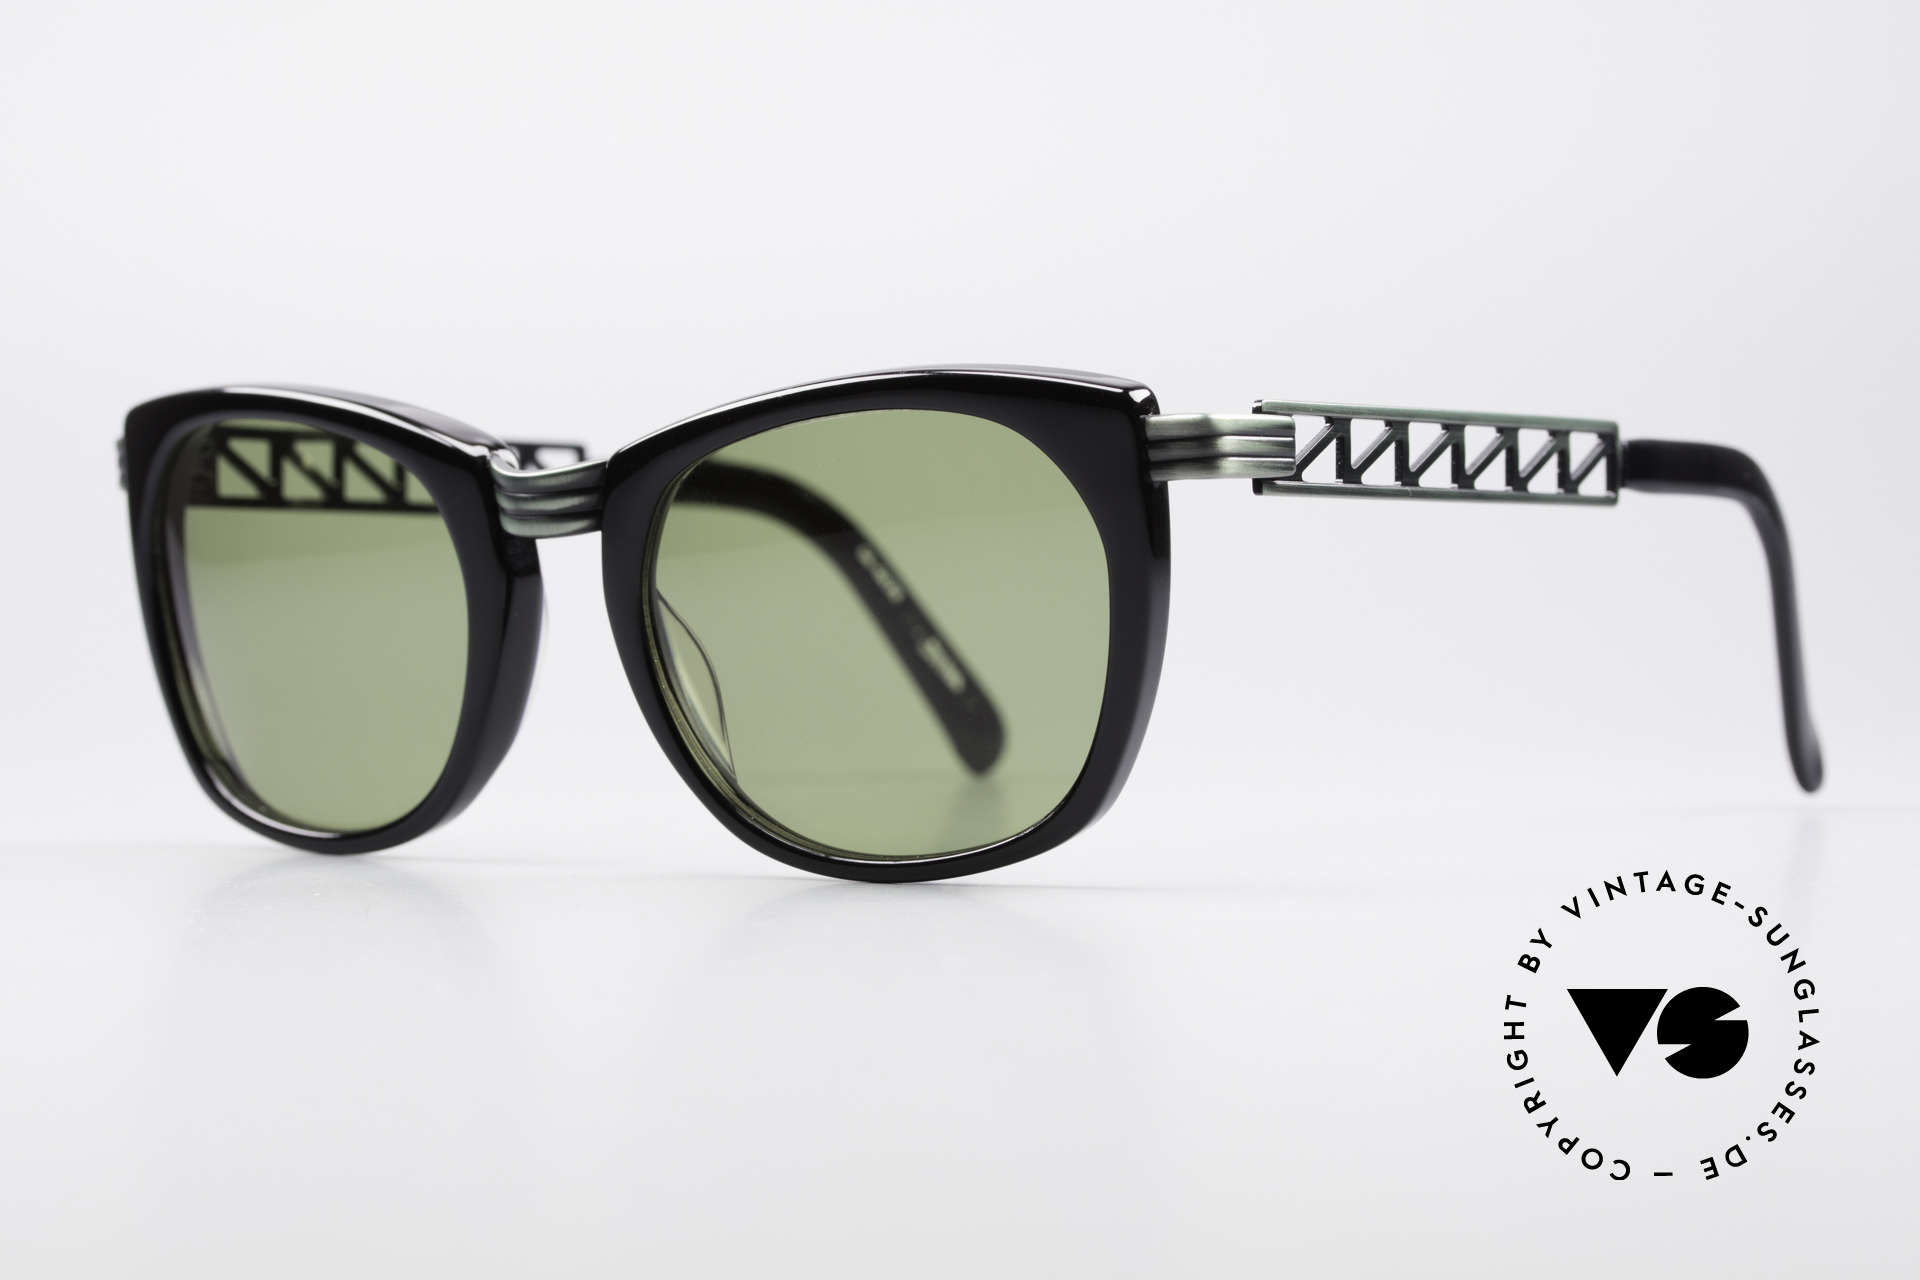 "Jean Paul Gaultier 56-0272 90's Steampunk Sunglasses, ""rusty green"" finish & with green sun lenses, Made for Men and Women"